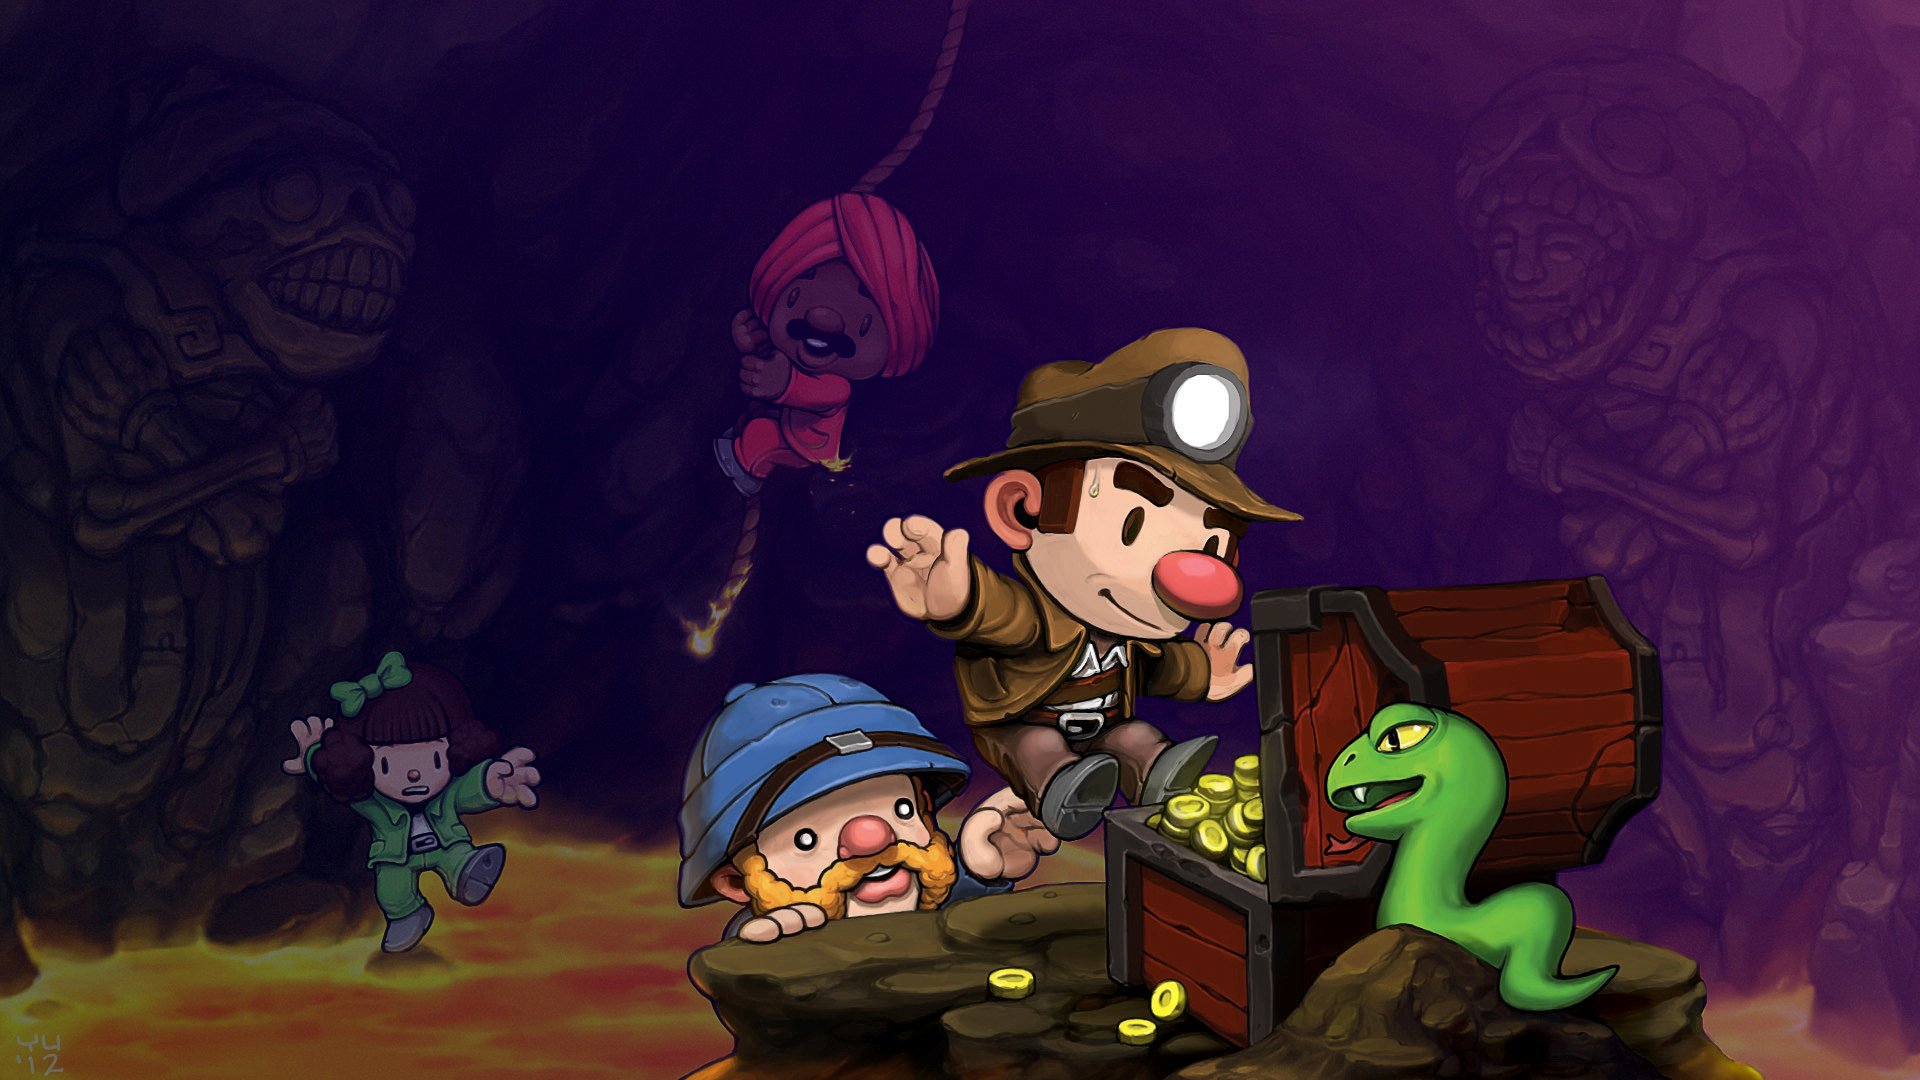 artwork from Spelunky with purple overlay